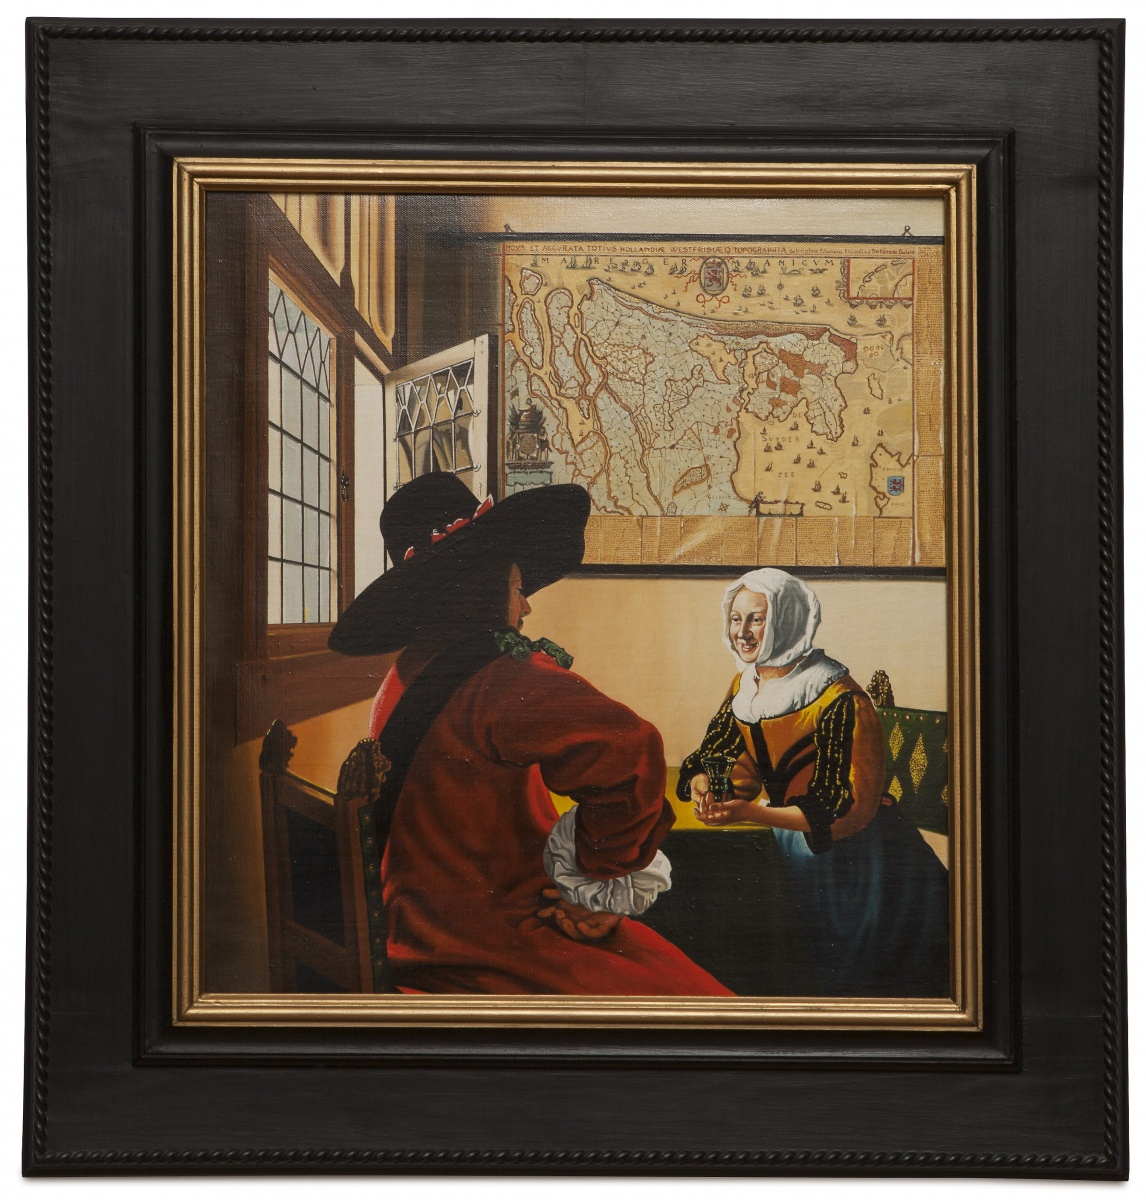 Officer and laughing girl - Il soldato e la fanciulla ridente - cm 48x43